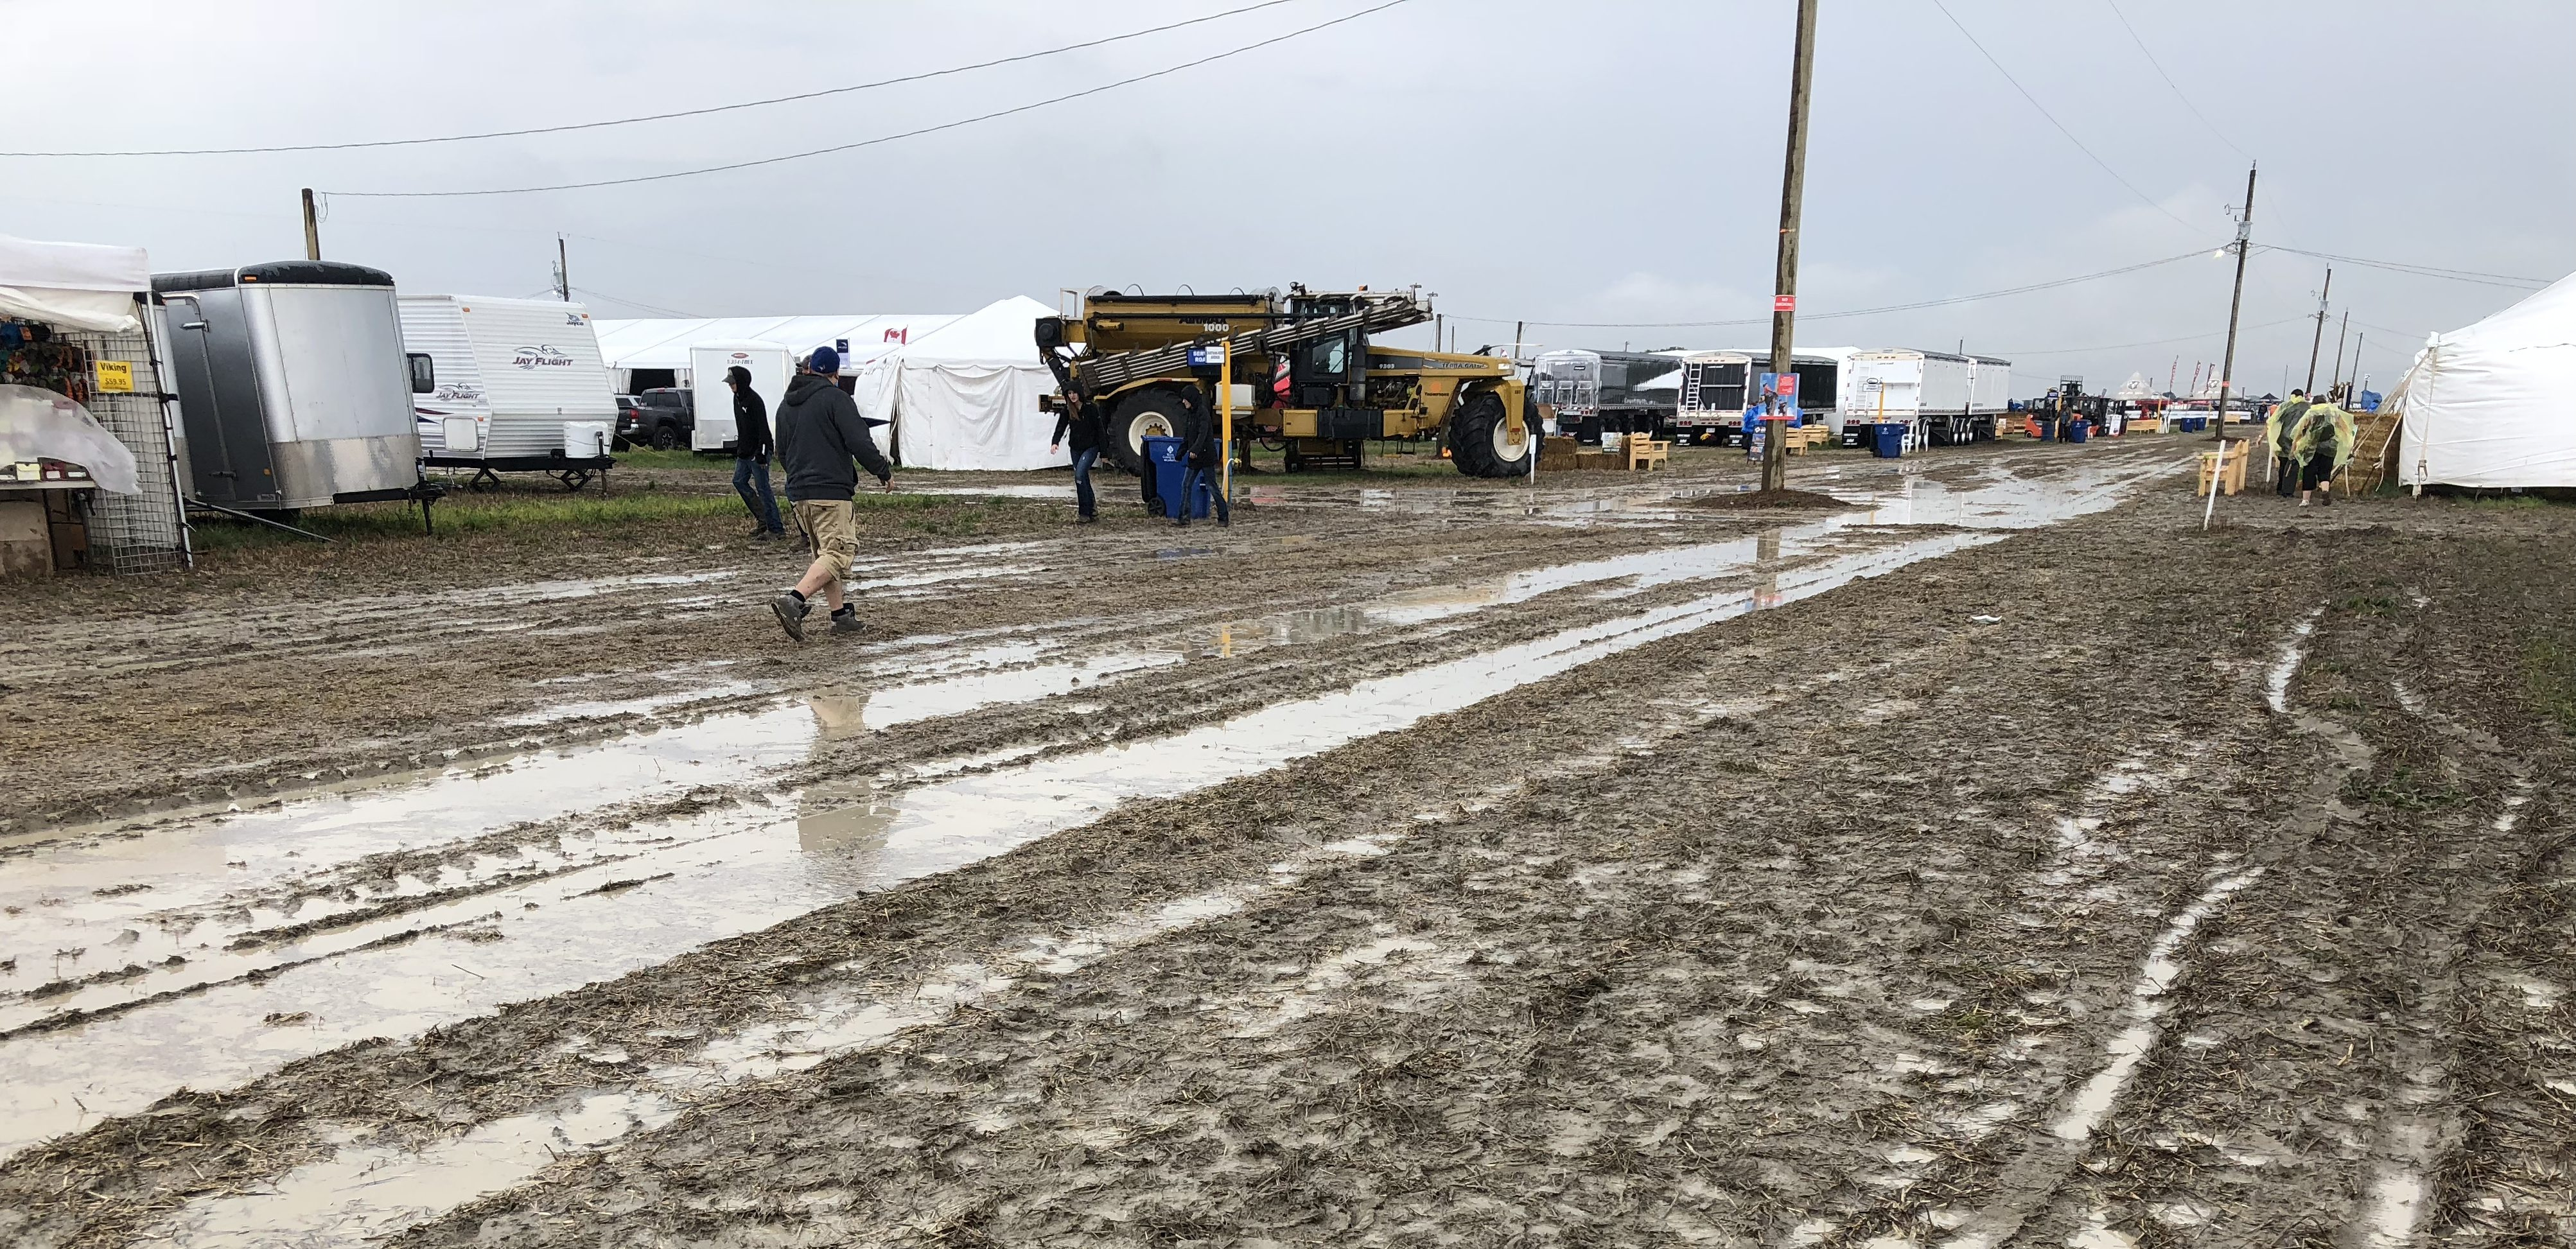 Heavy rainfall shuts down IPM for the day